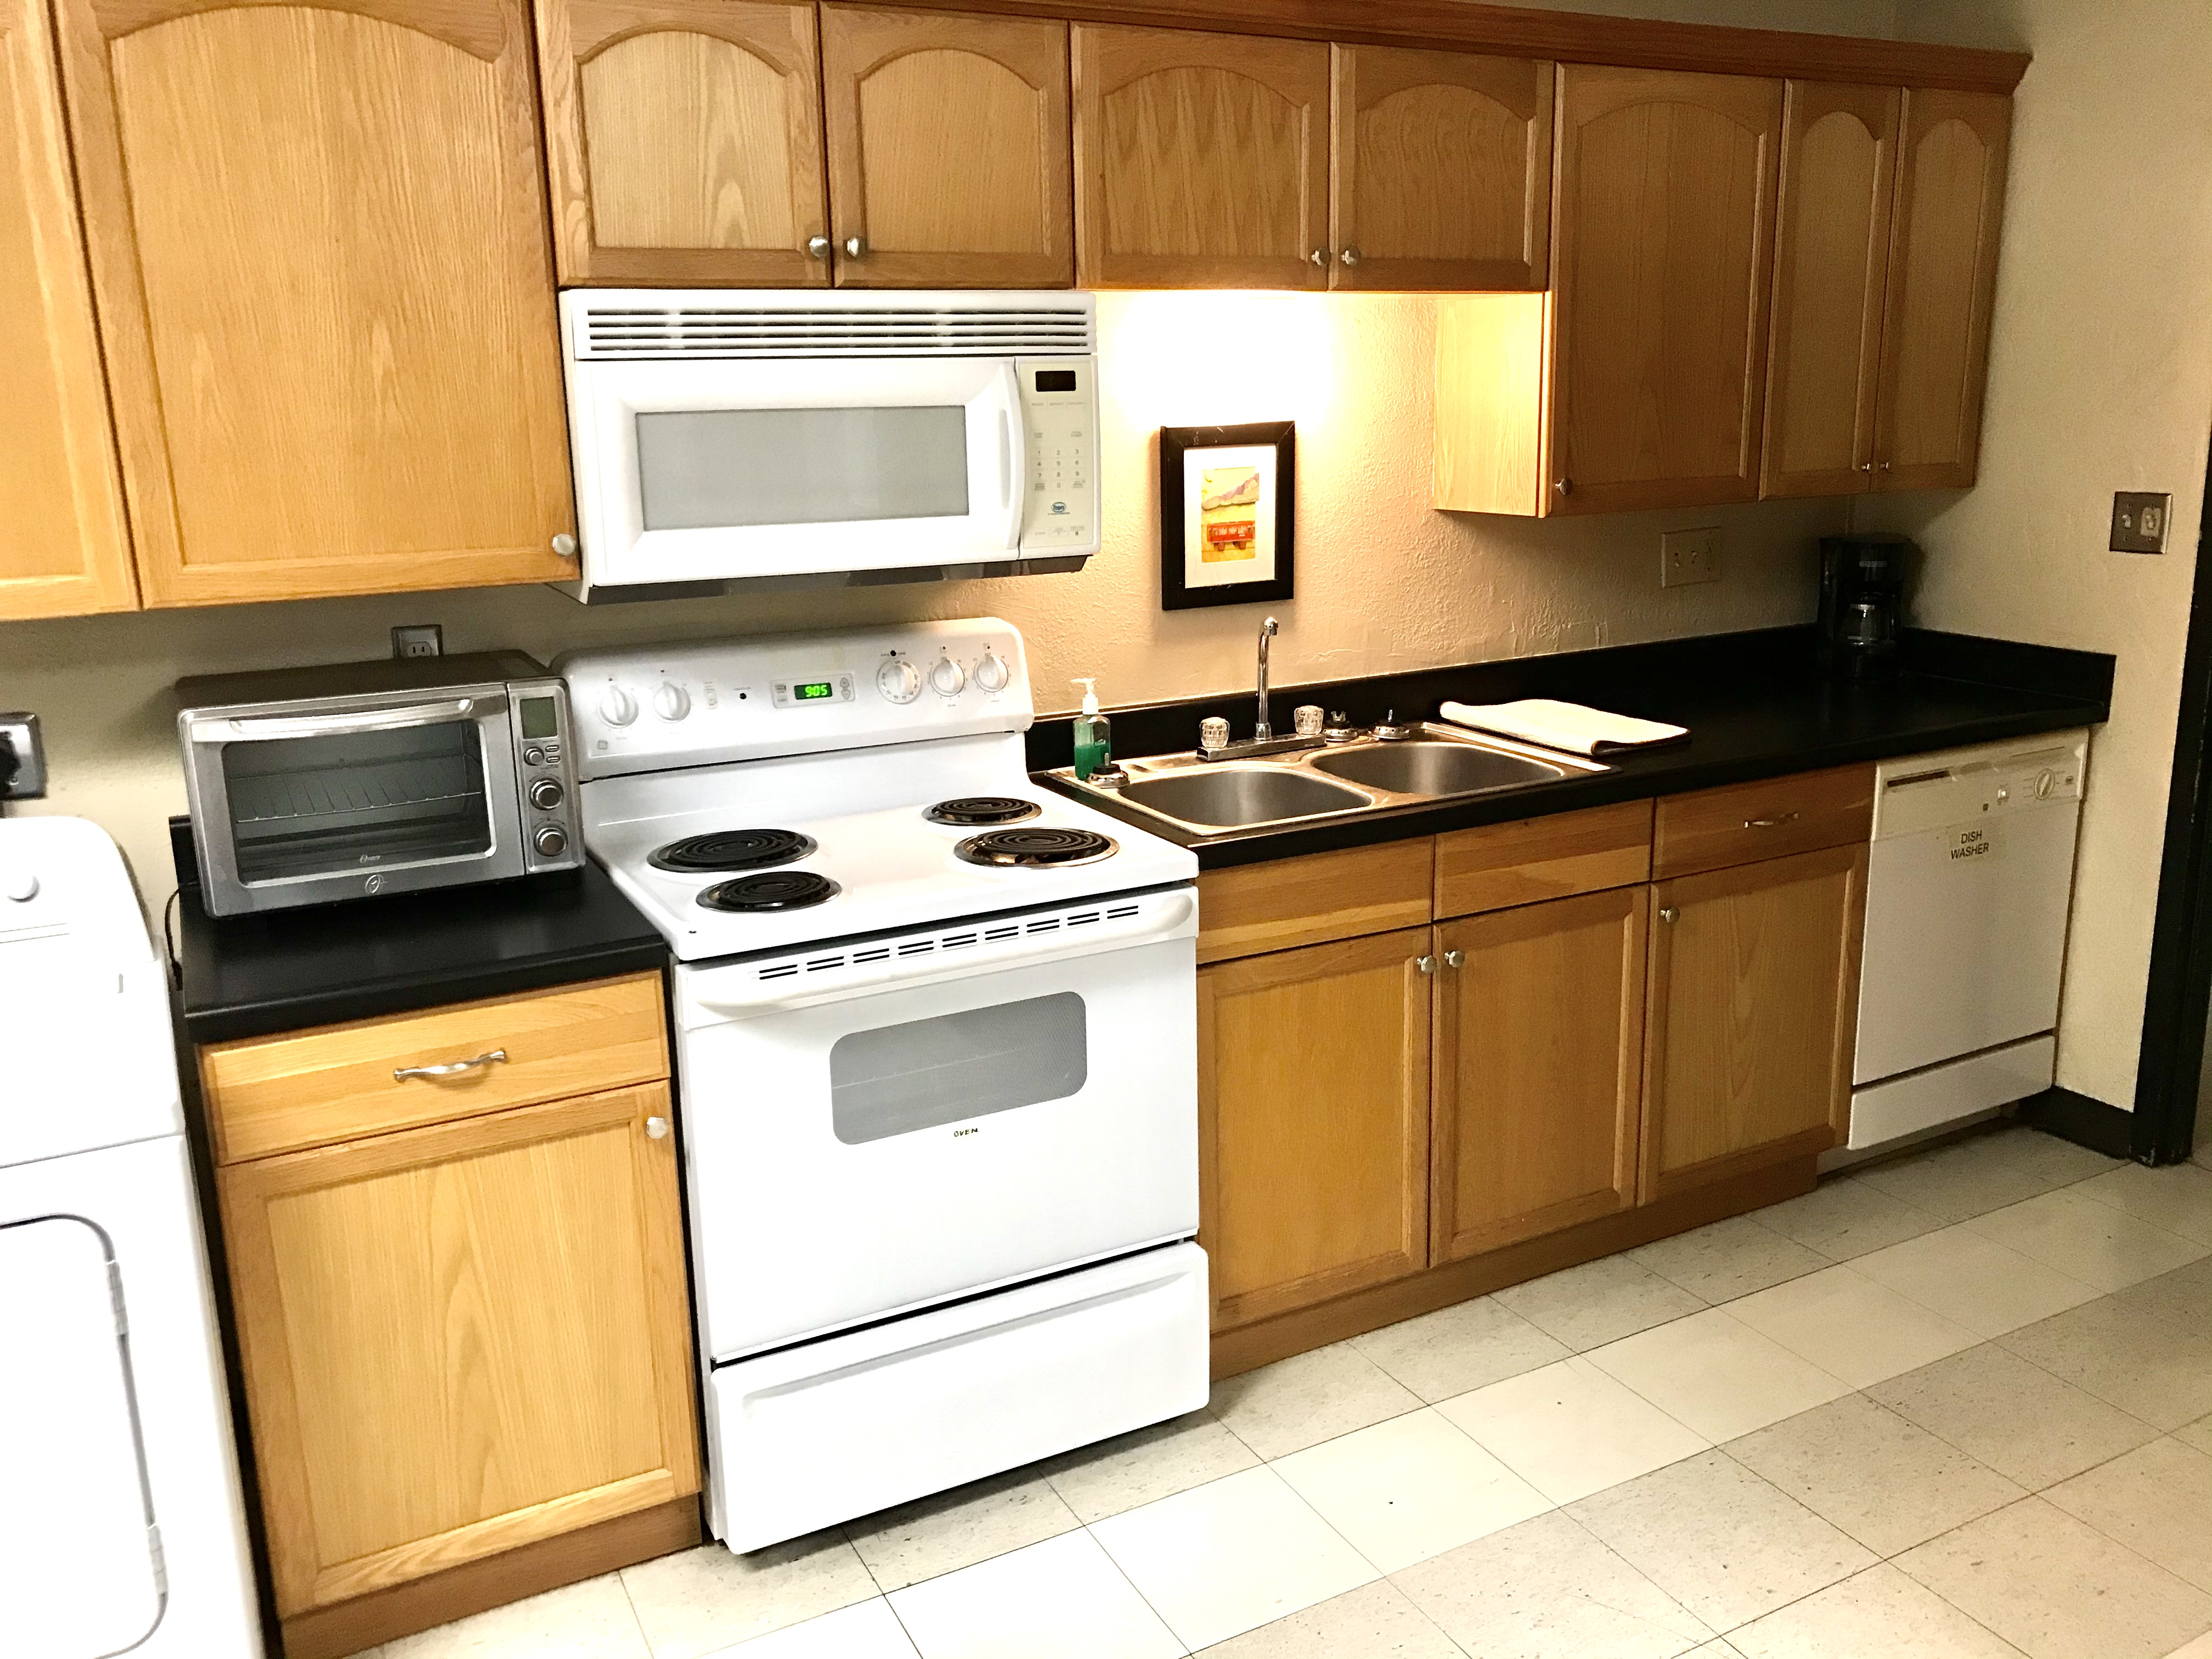 Counter, cabinets shown with a stove, sink and dishwasher